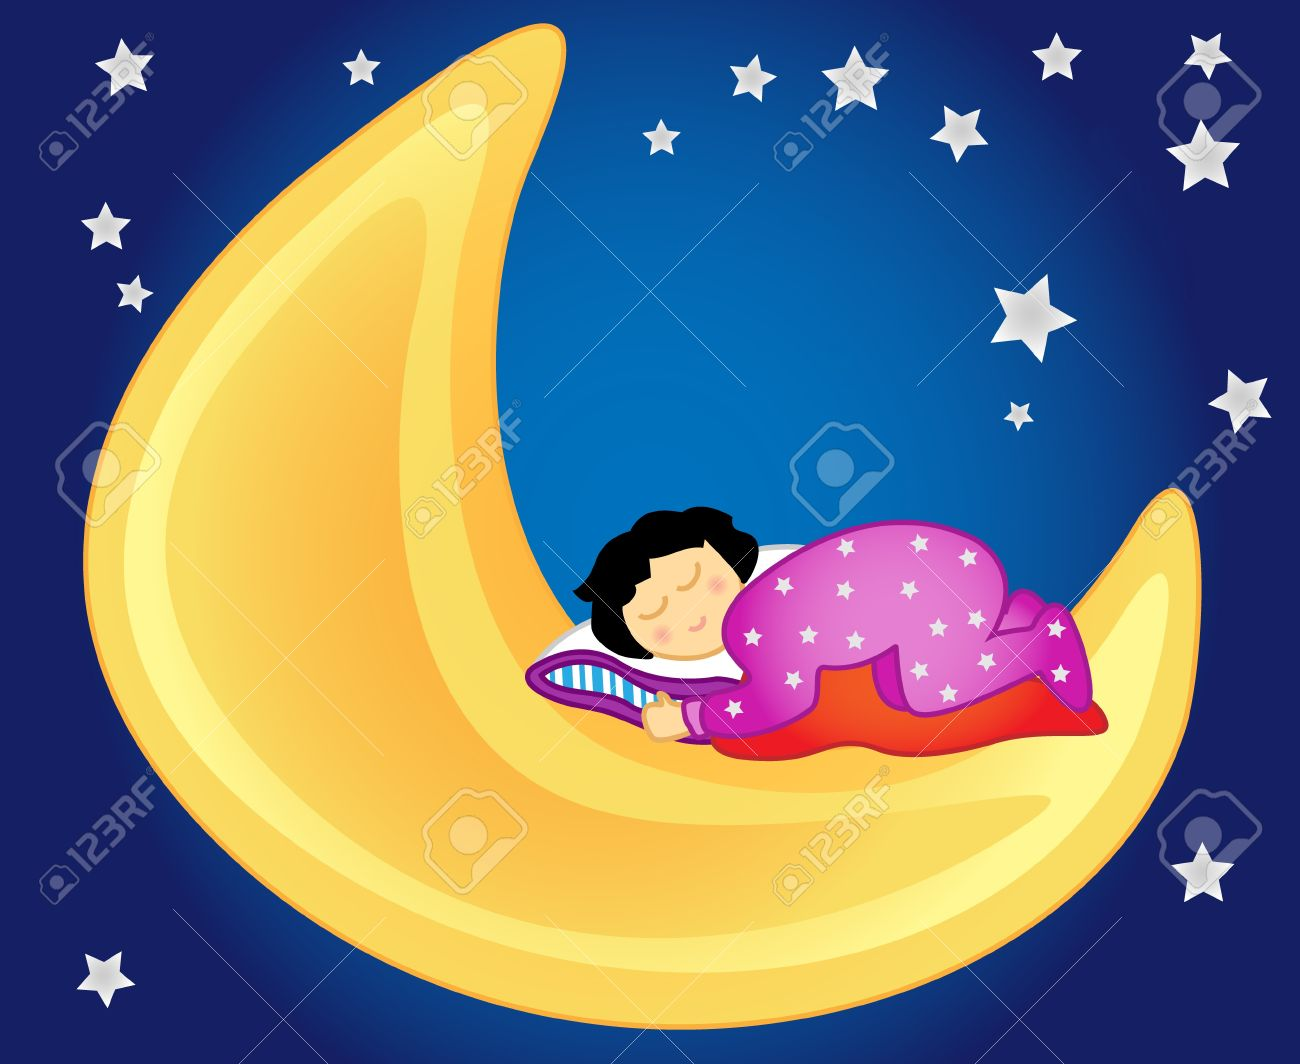 Fun and peaceful: little girl sleeping on the moon in the sky amongst the stars, perfect for a kids room. Stock Vector - 10129356